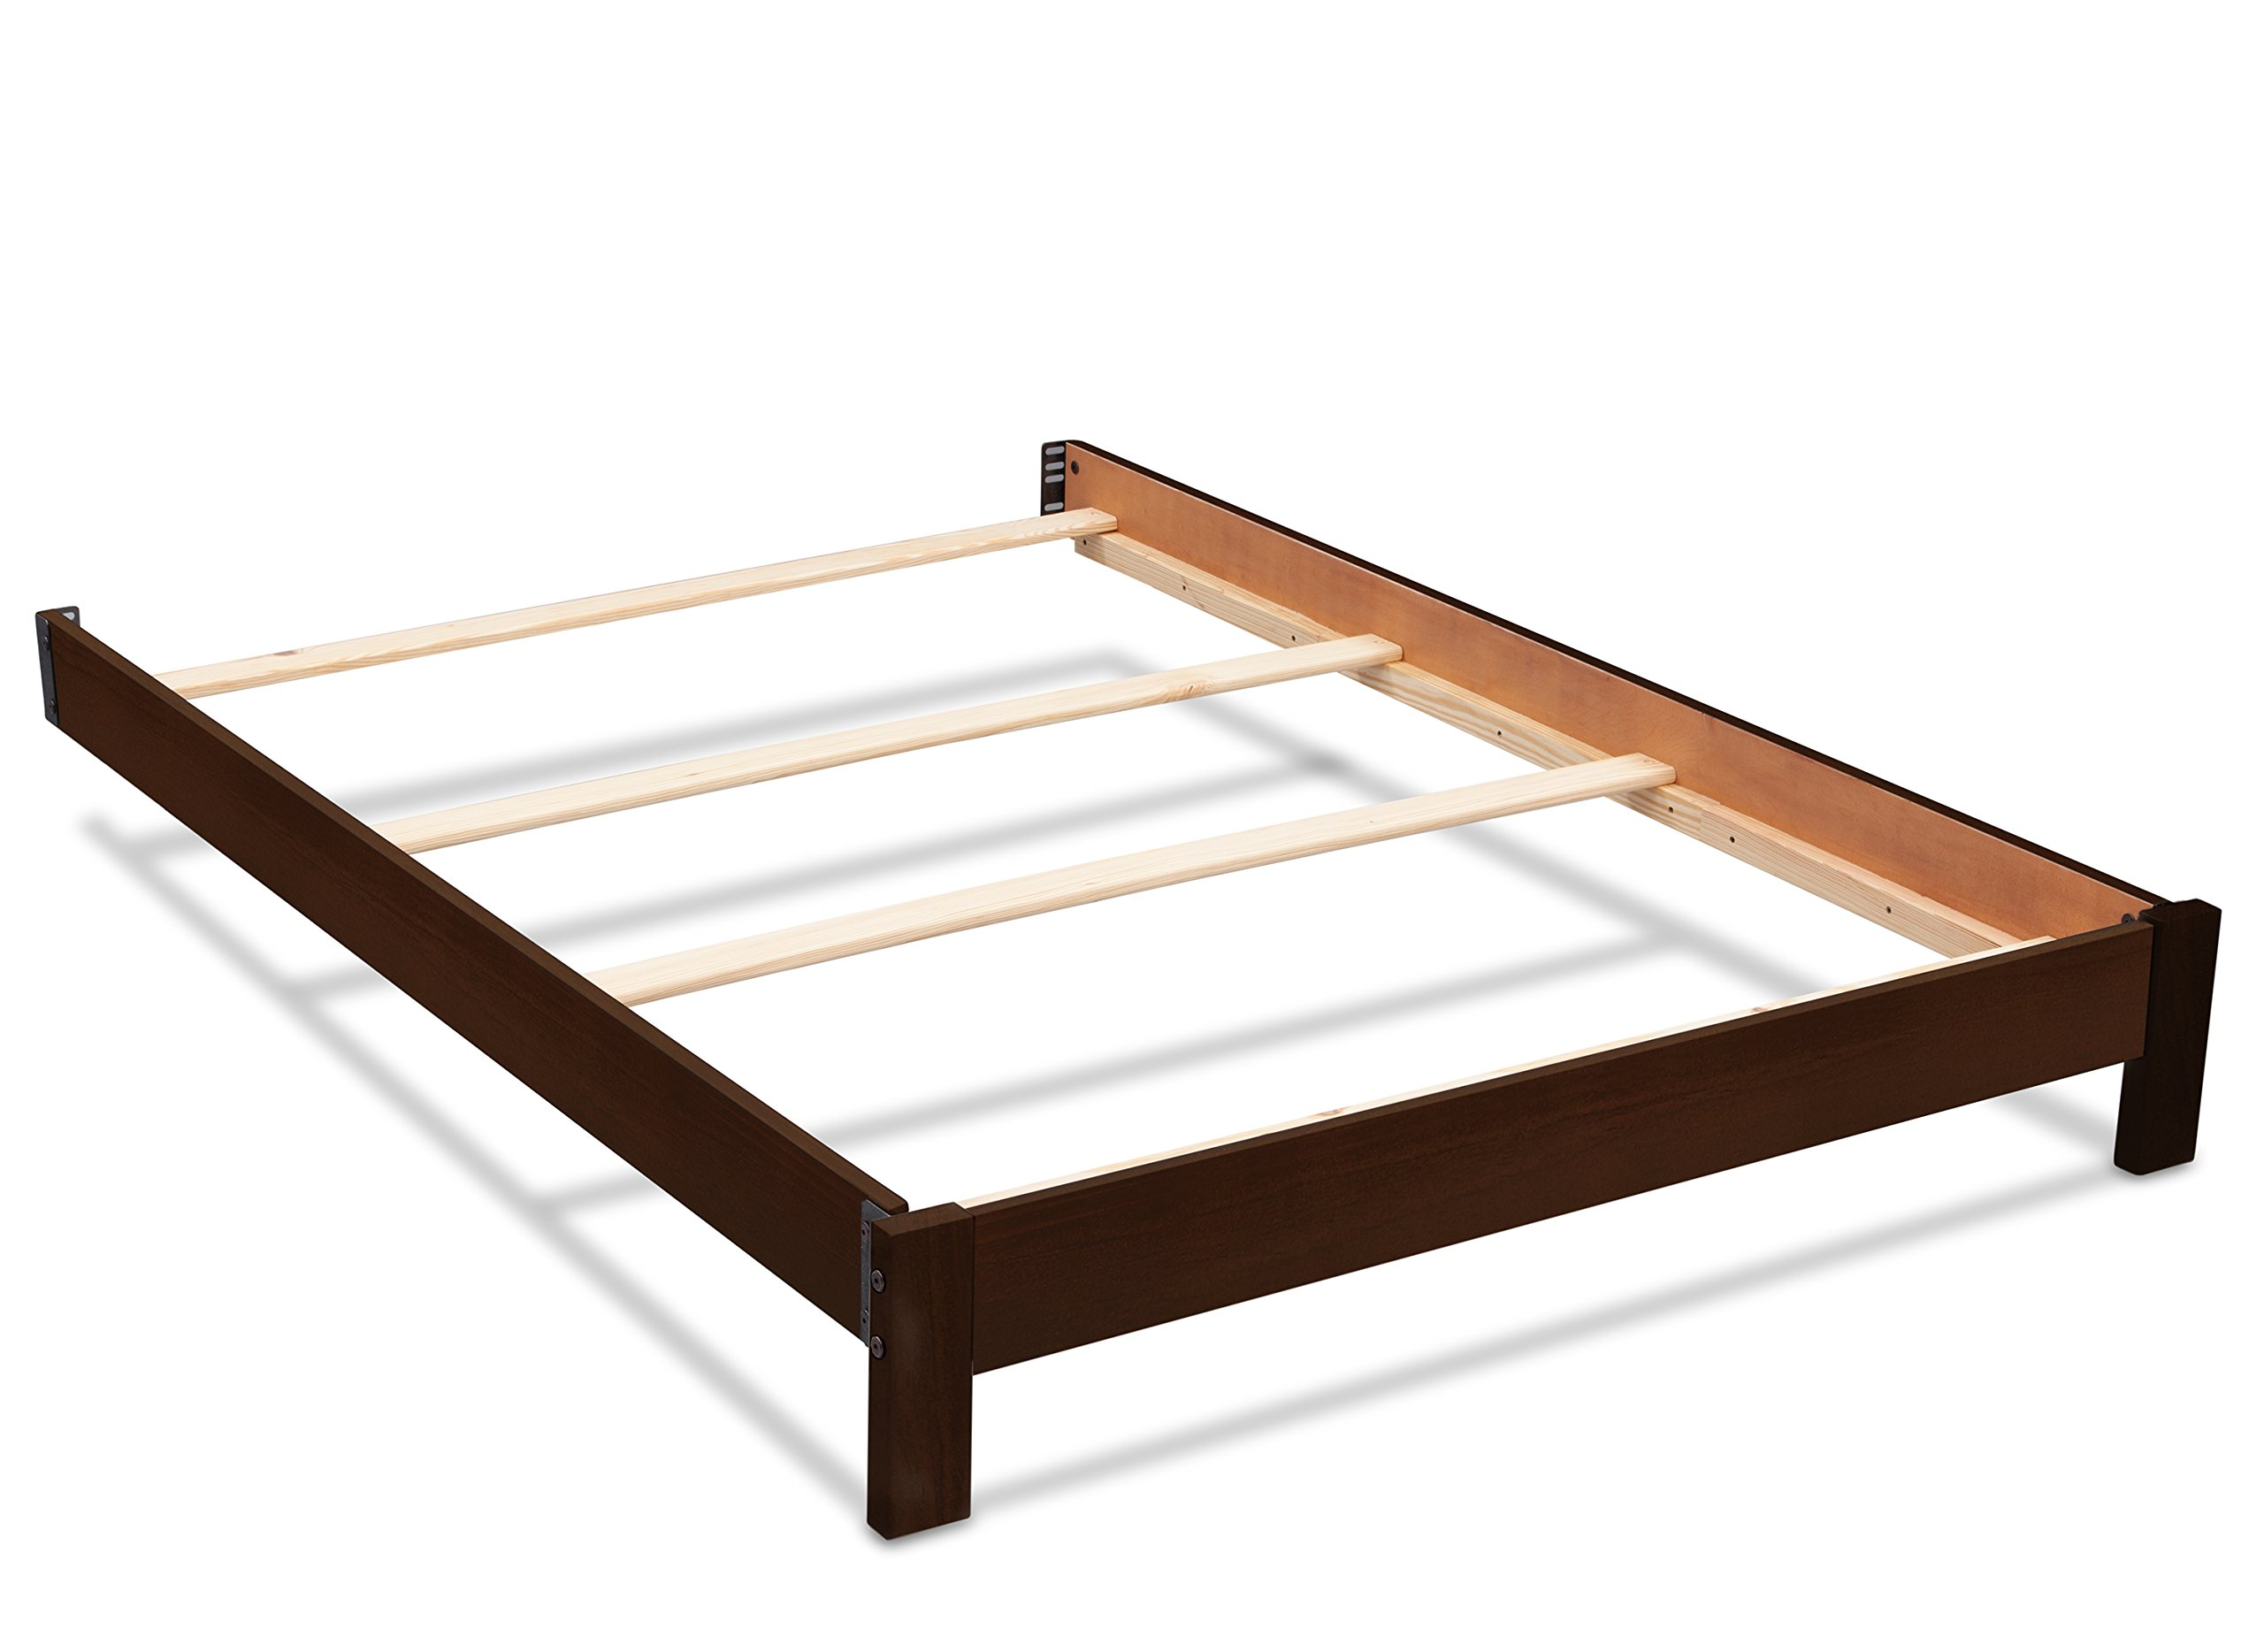 Serta Full Size Platform Bed Kit, Dark Chocolate